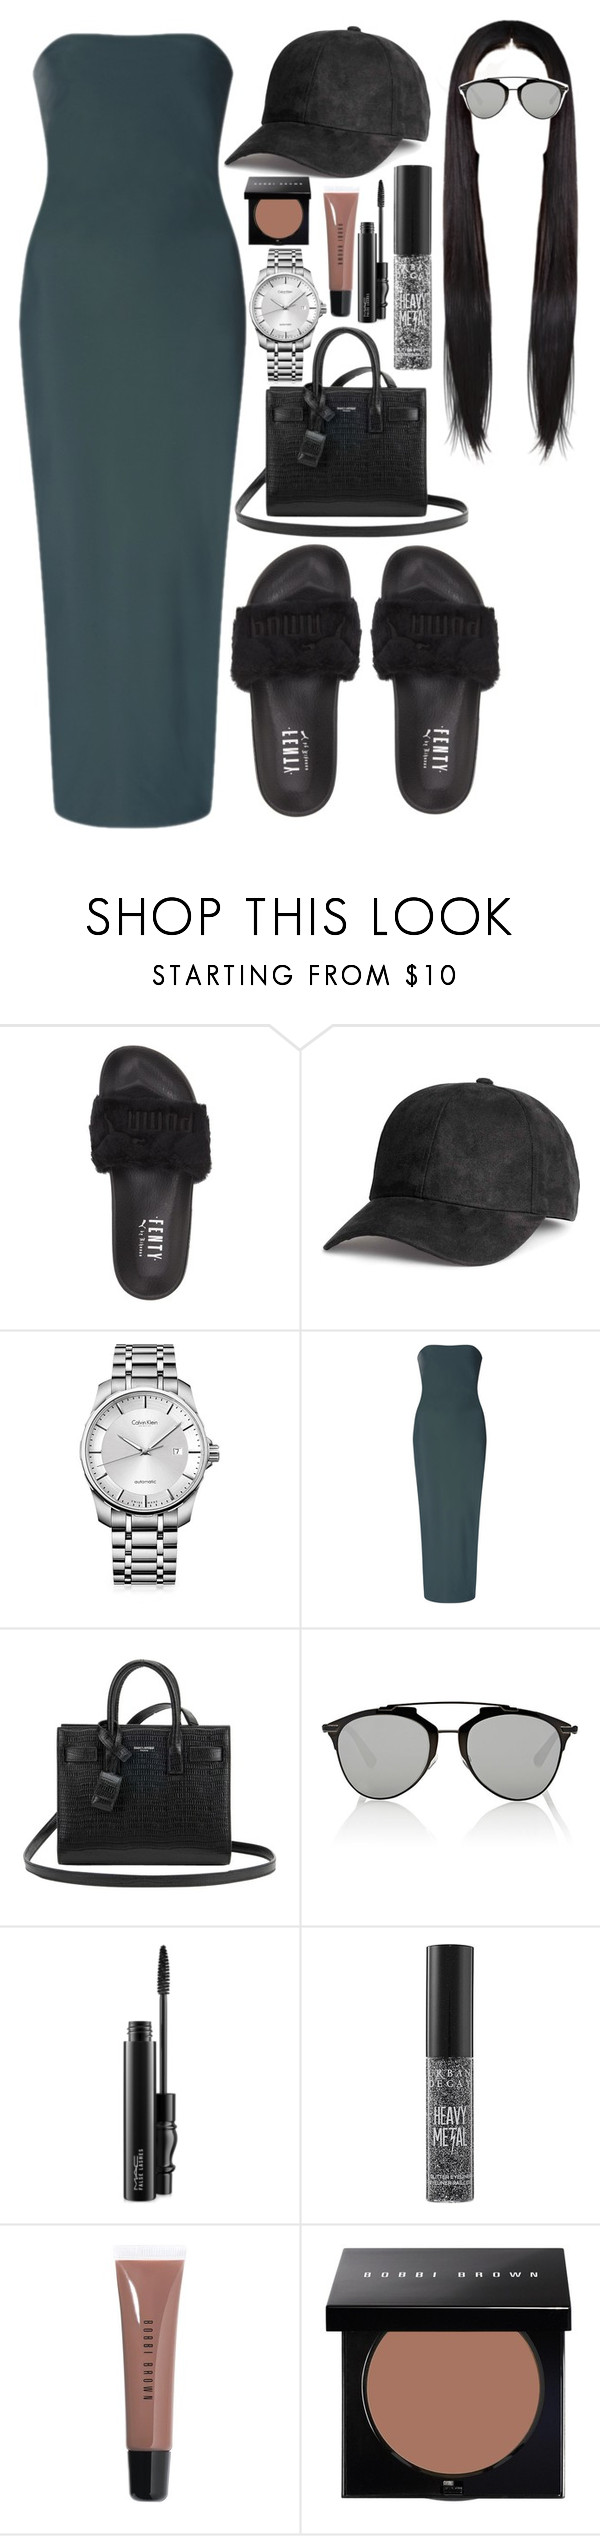 """""""Sans titre #1013"""" by perfectiongod ❤ liked on Polyvore featuring Puma, Calvin Klein, Flagpole, Yves Saint Laurent, Christian Dior, MAC Cosmetics, Urban Decay and Bobbi Brown Cosmetics"""